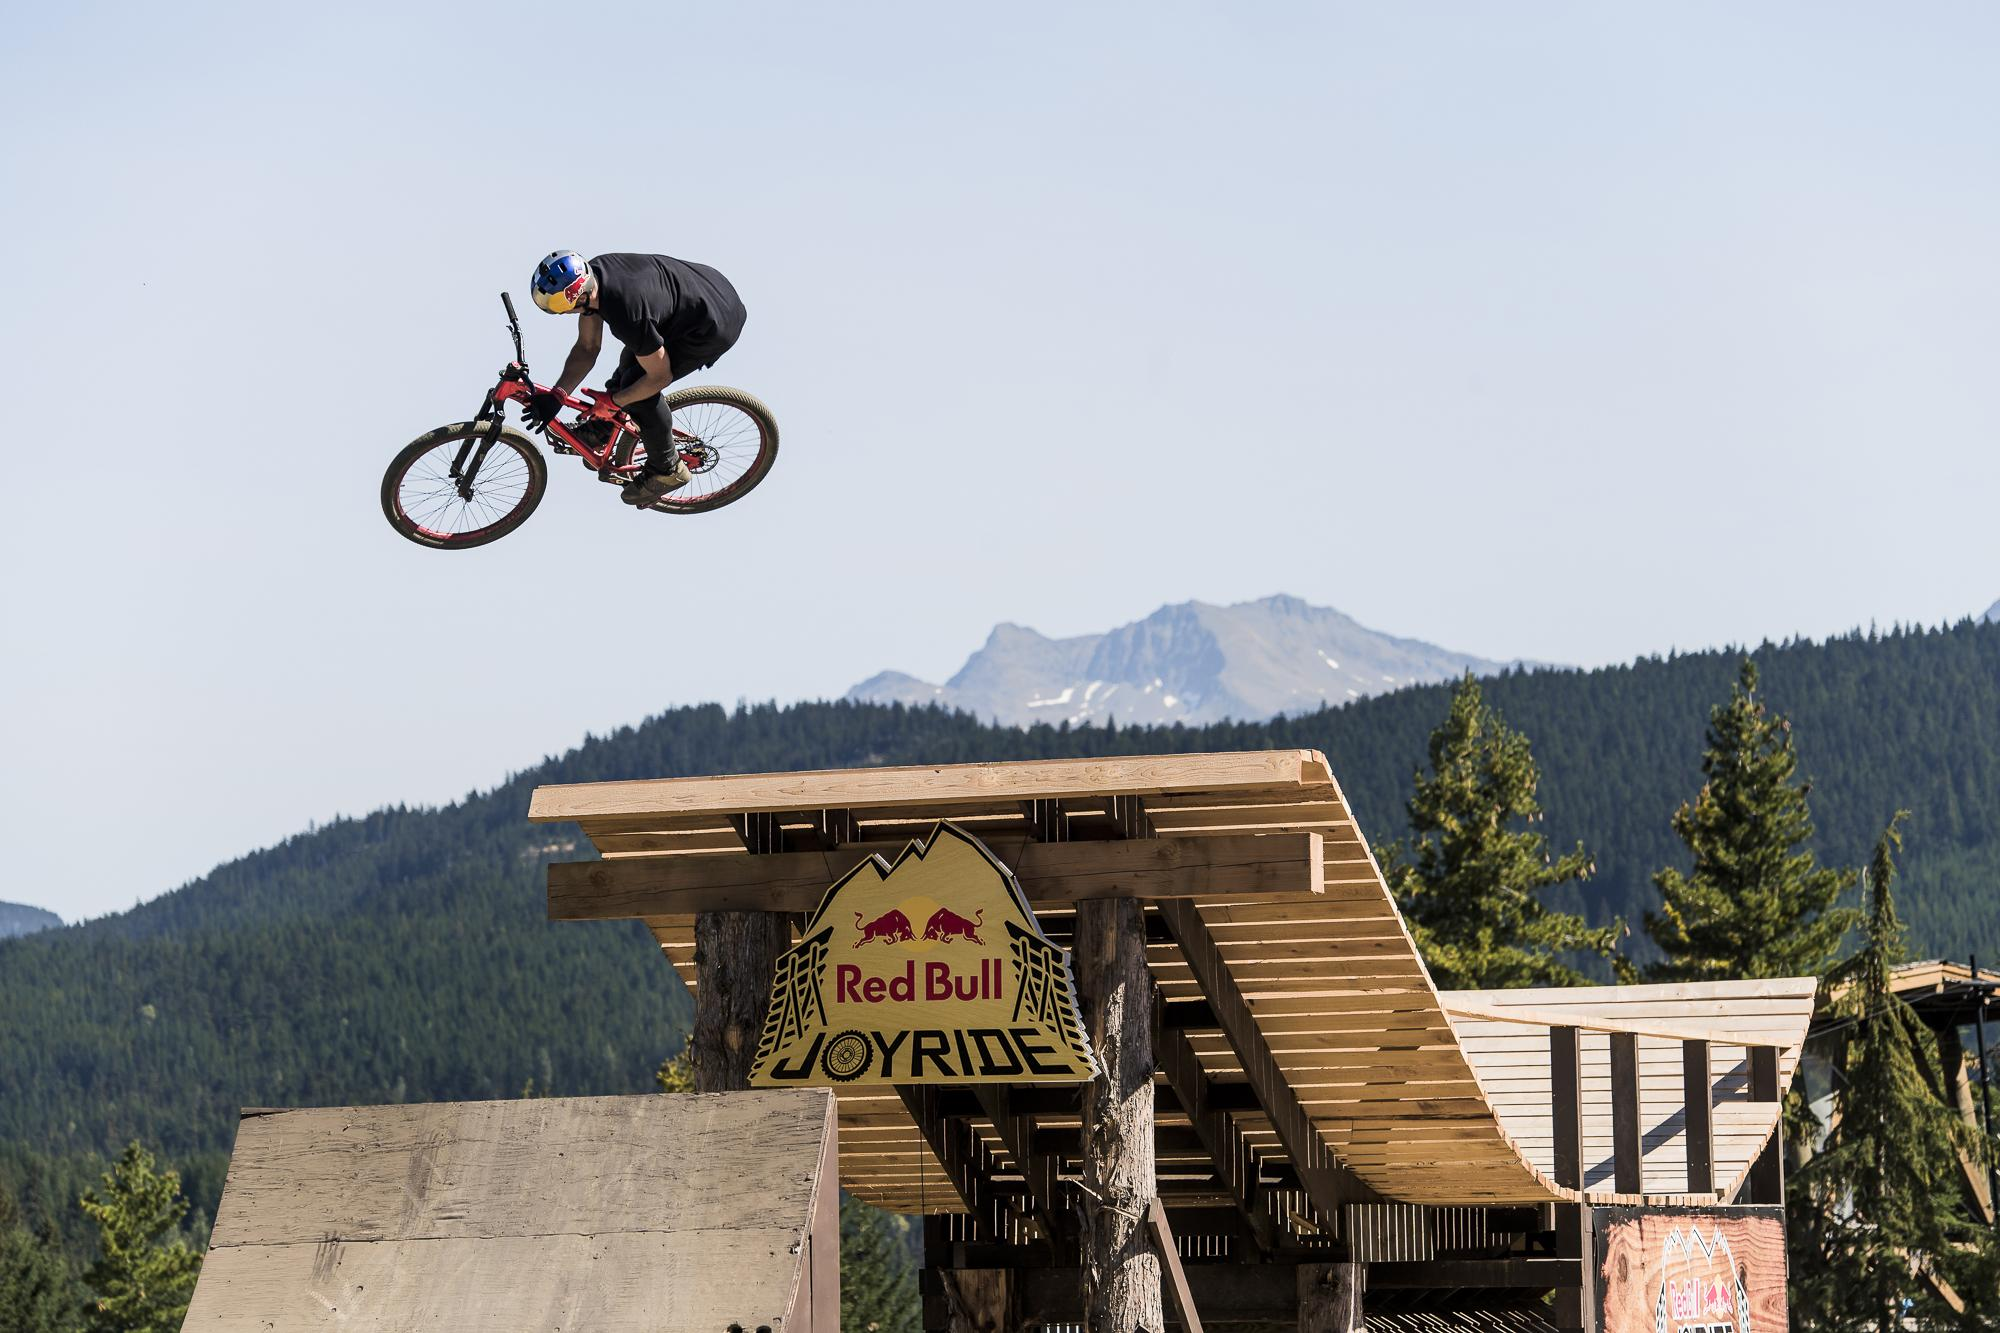 power-of-mind_whistler_fot-bartek-wolinski-red-bull-content-pool_004